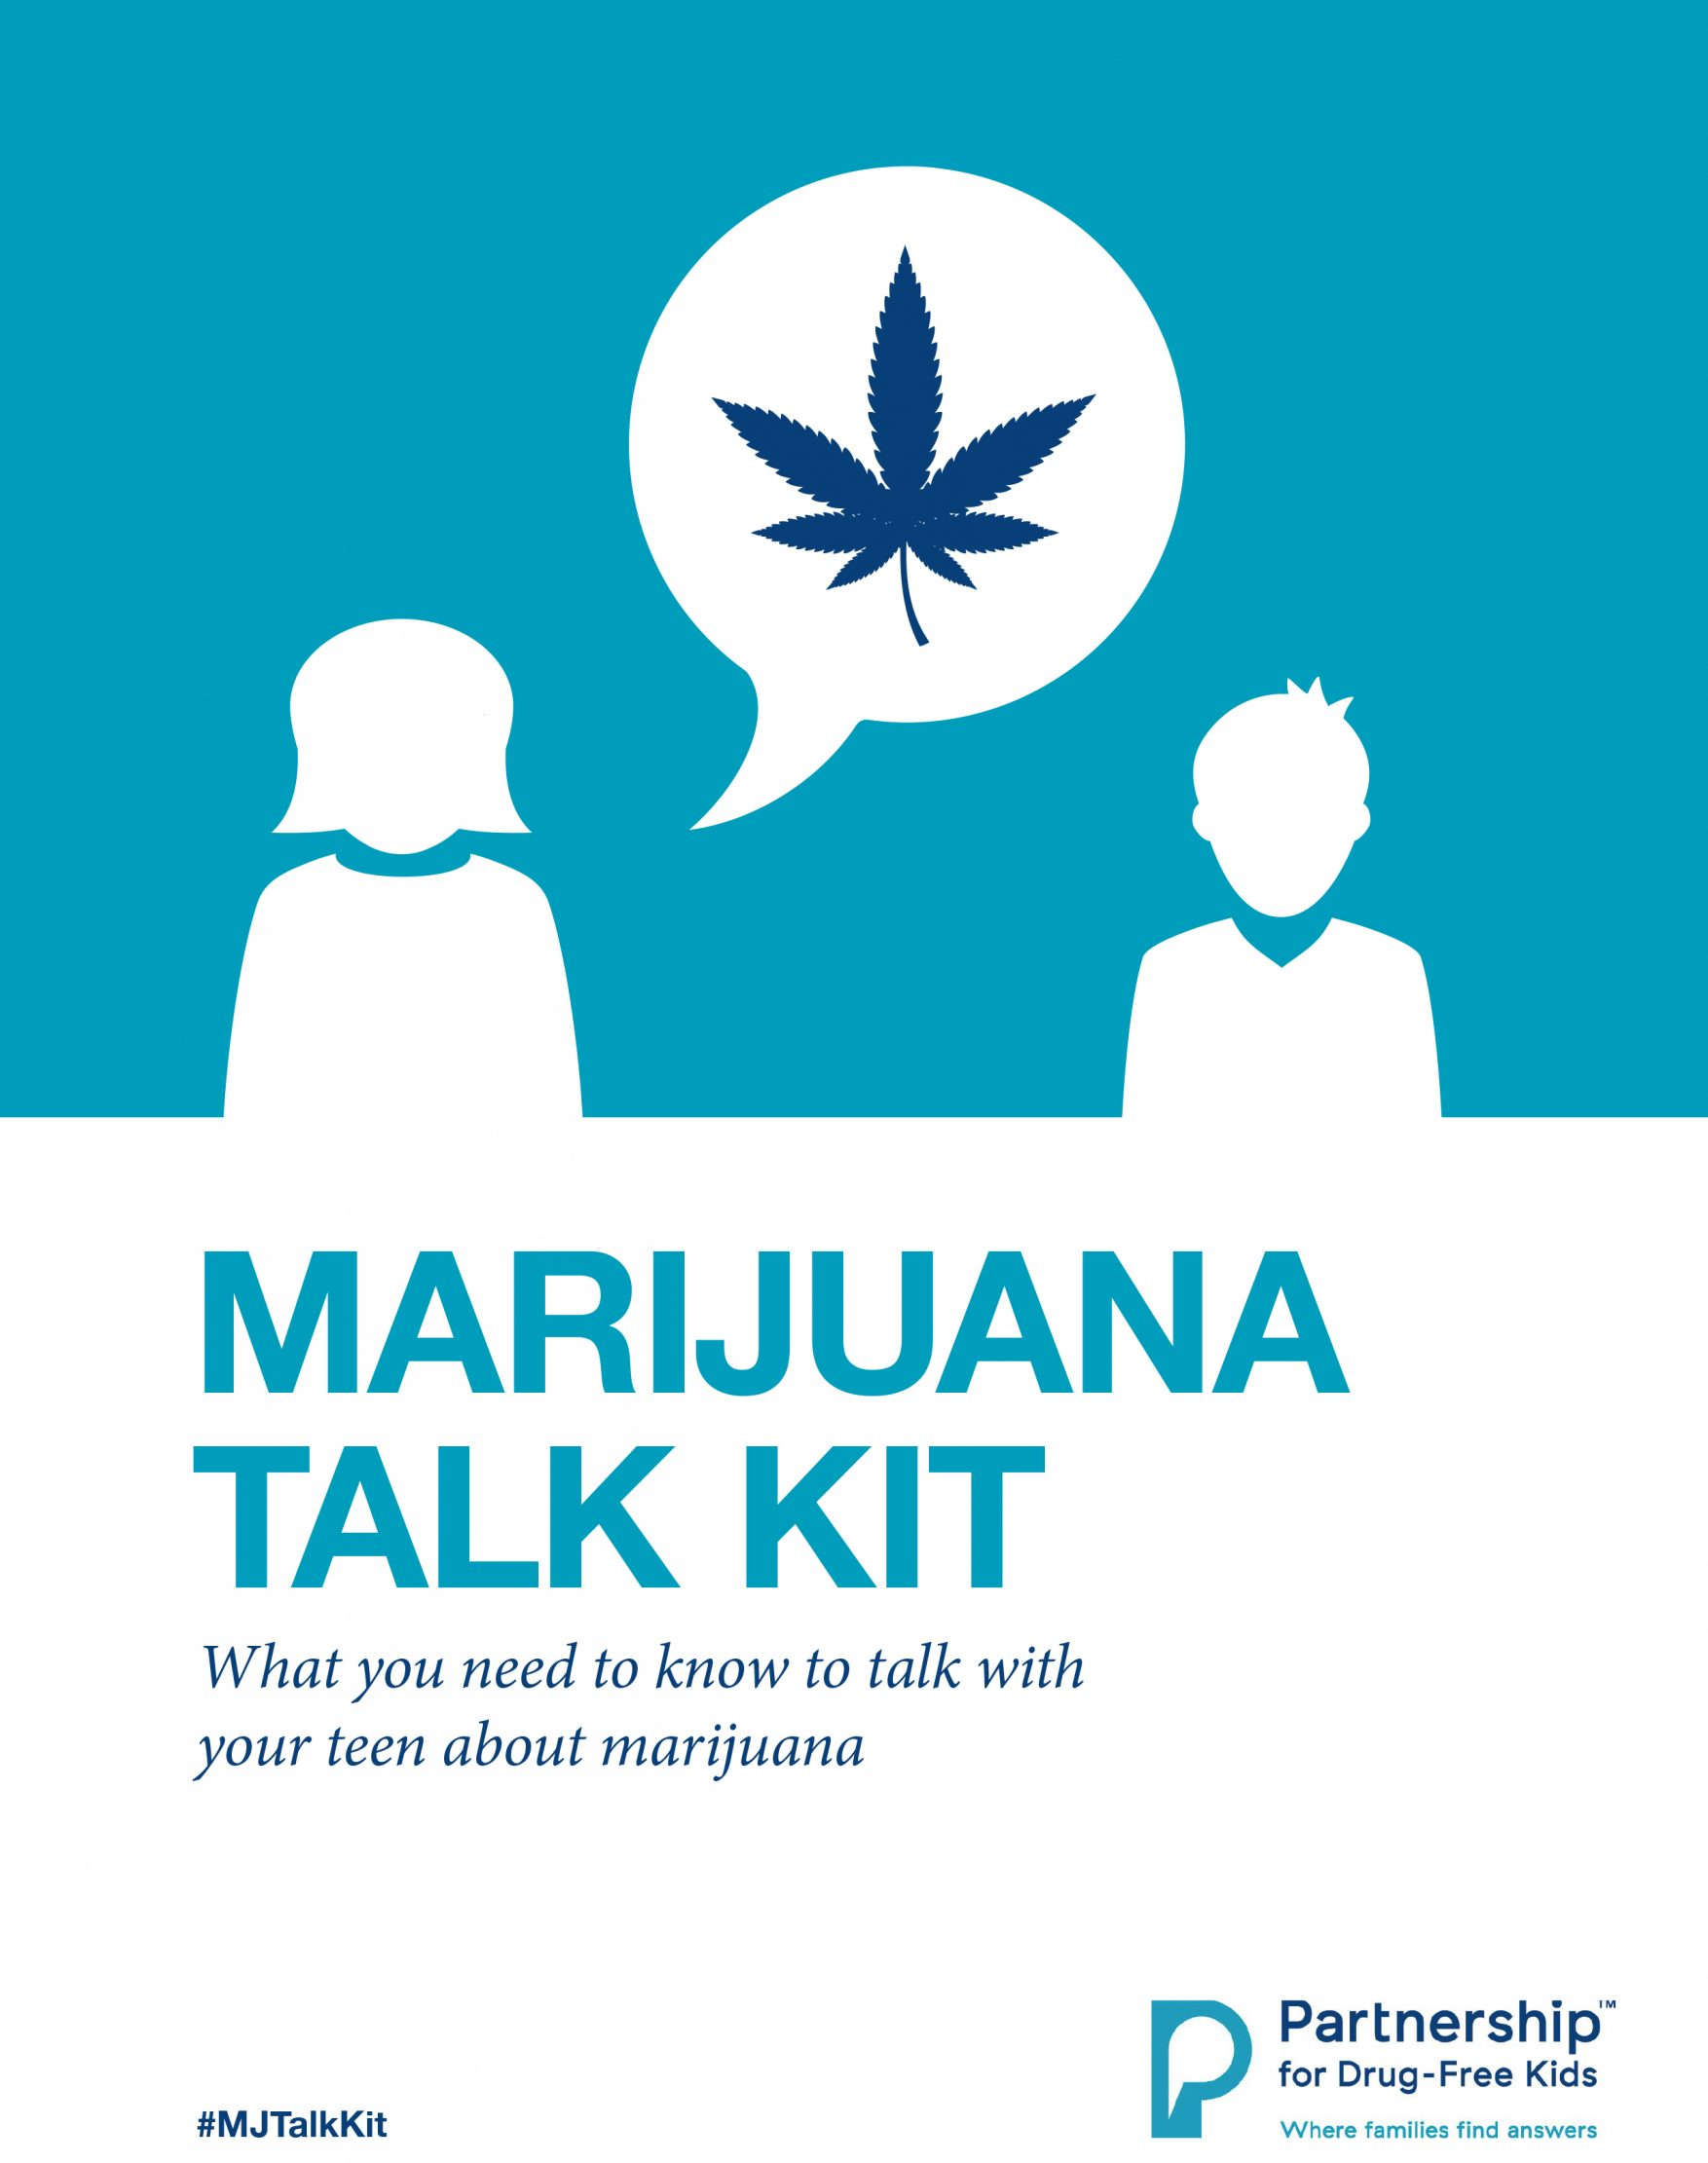 Marijuana talk kit: what you need to know to talk with your teen about marijuana